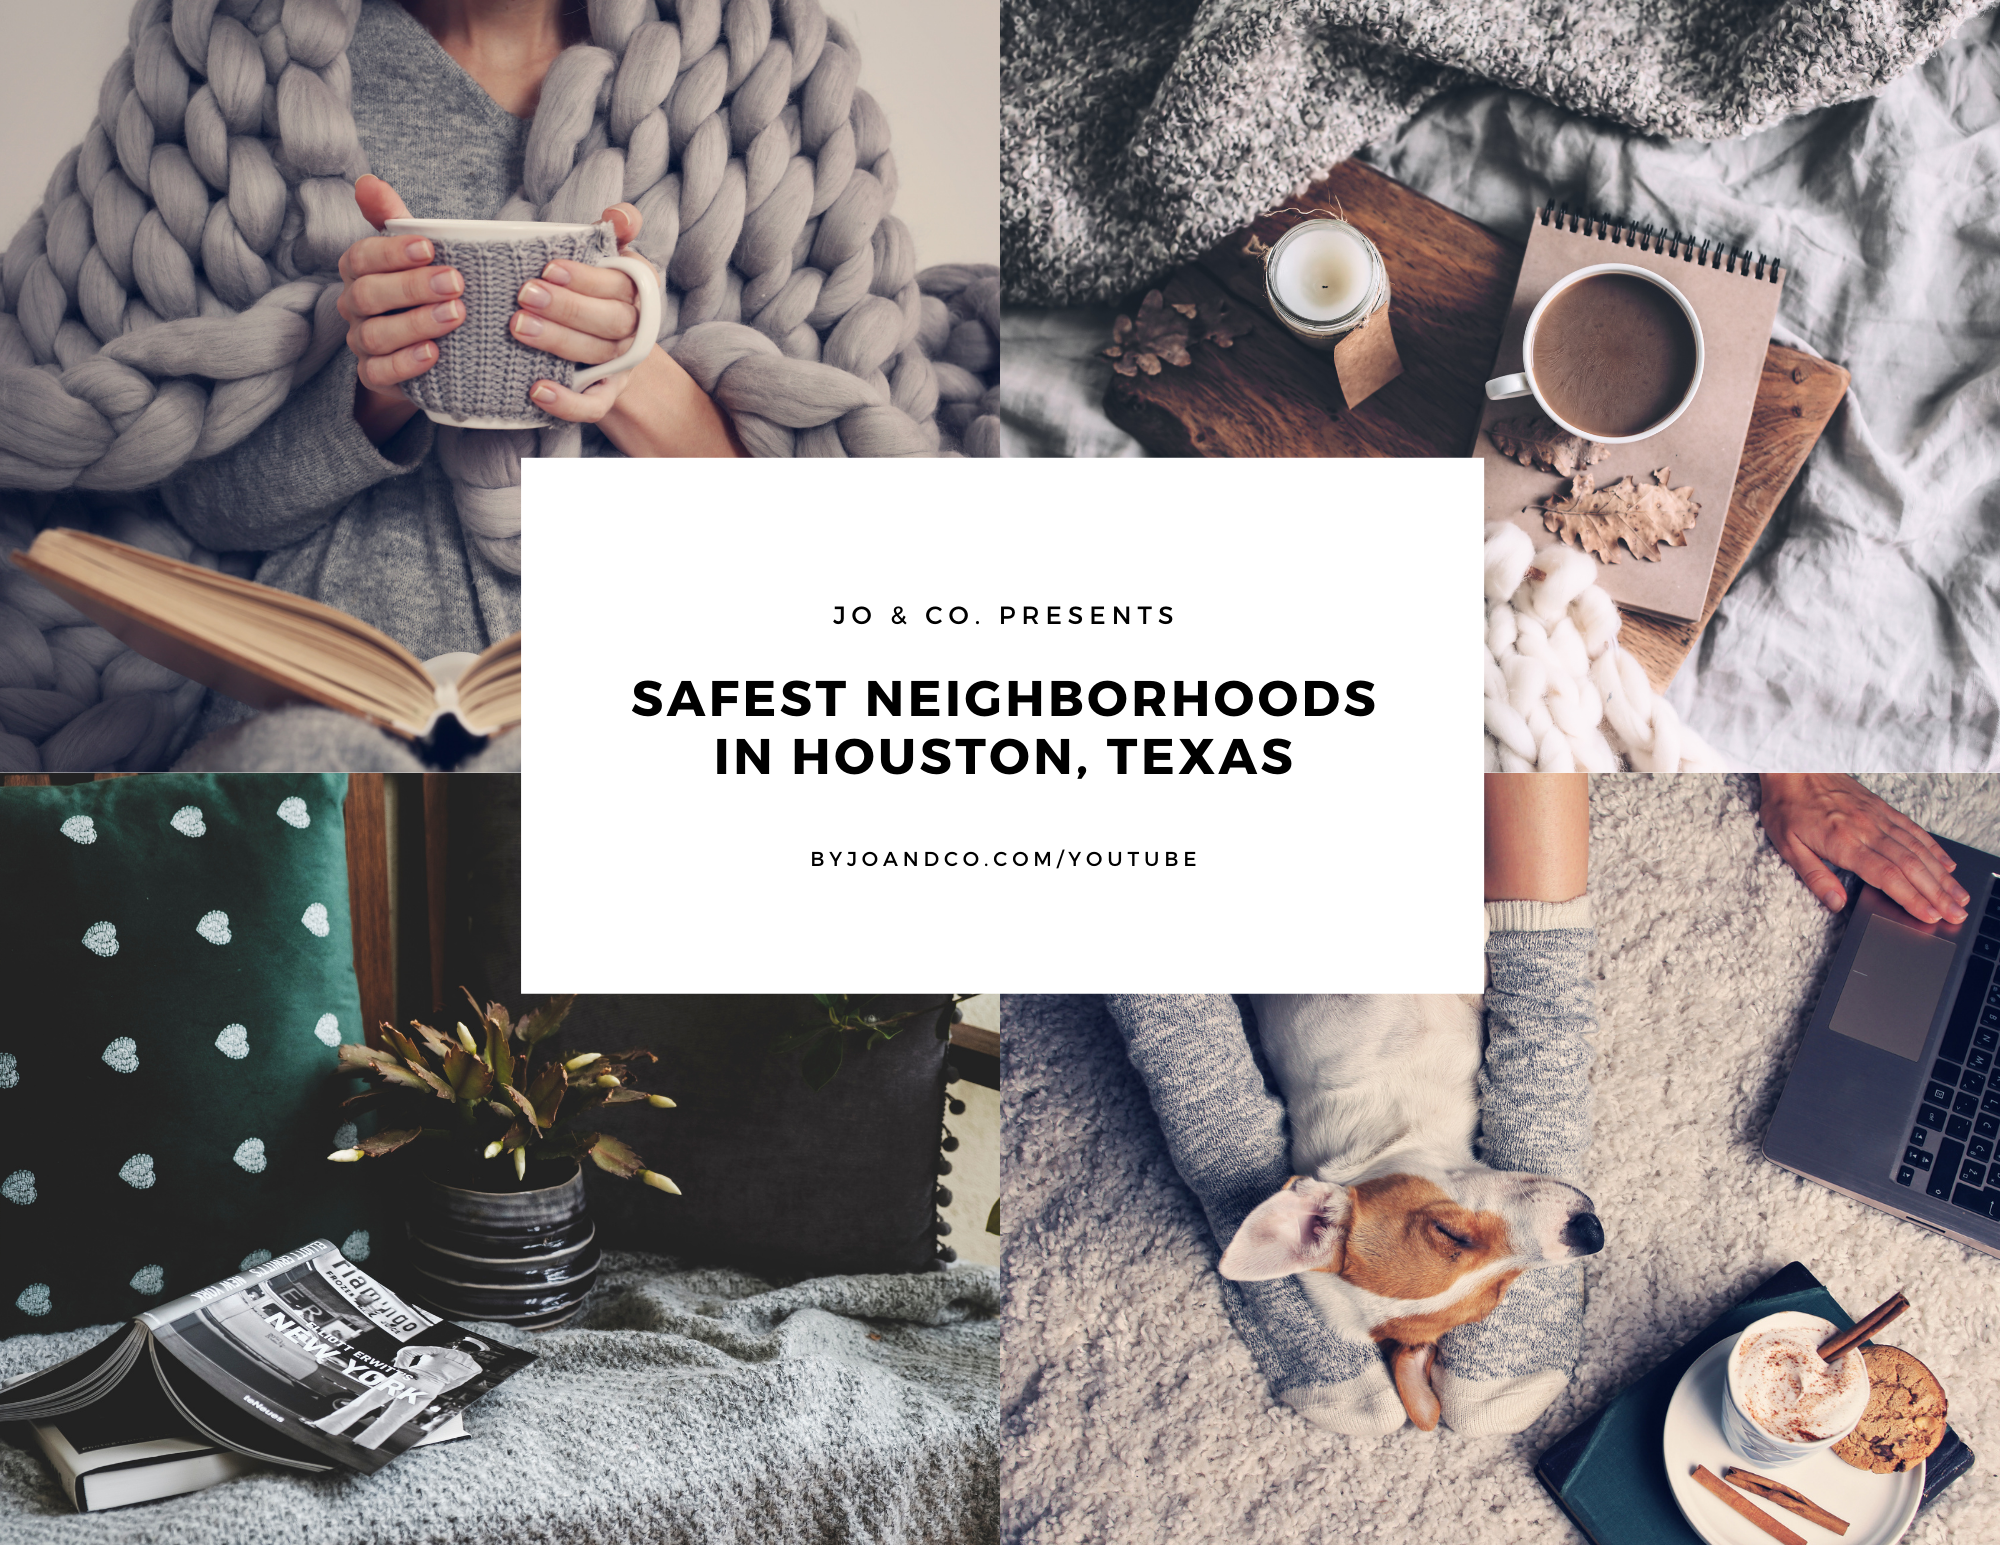 safest neighborhoods in houston texas title photo